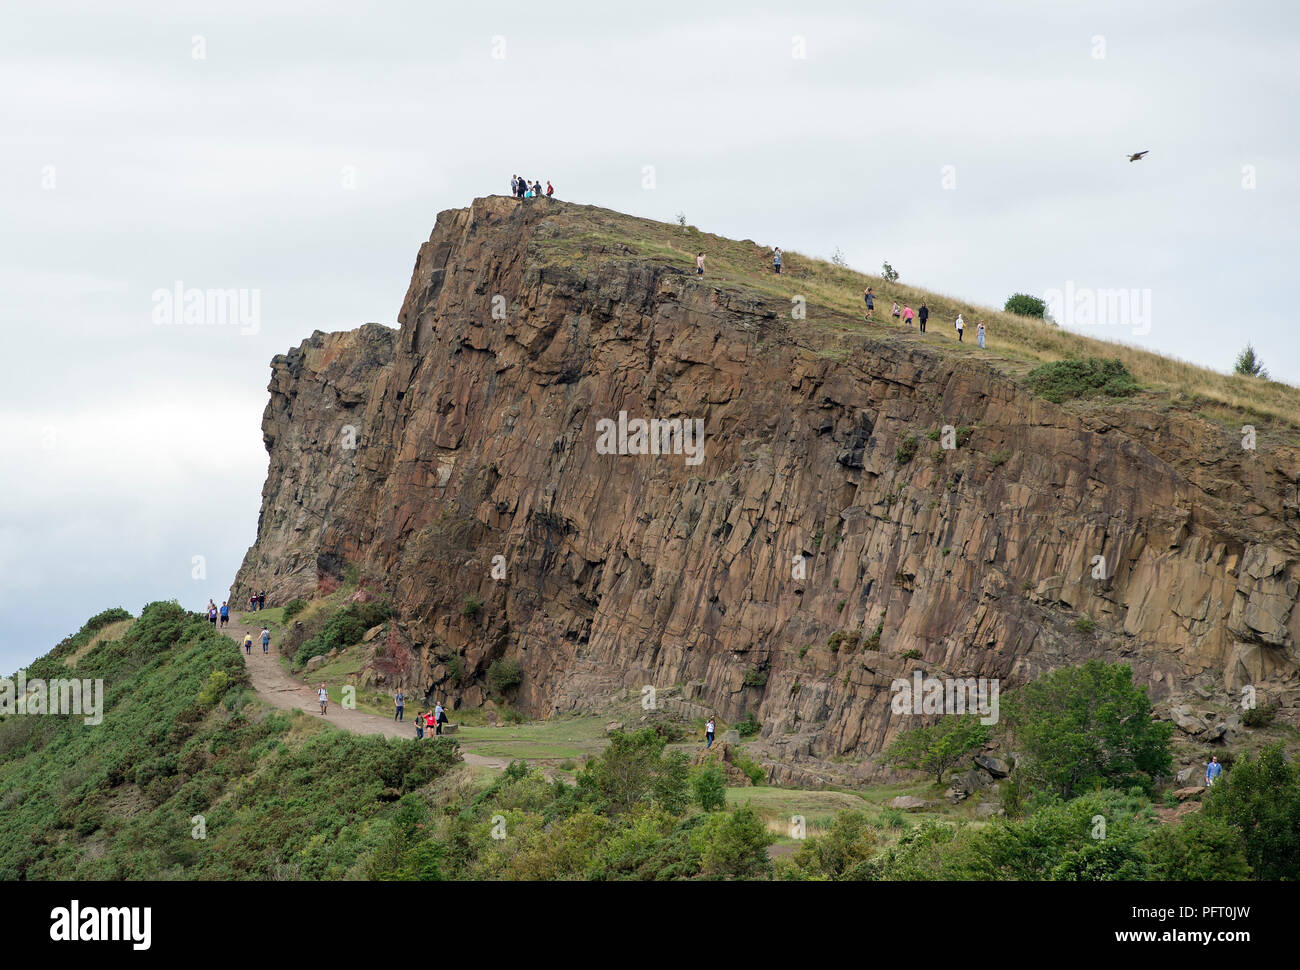 A view of the Arthur's Seat and the Radical road in Holyrood Park, Edinburgh, Scotland. - Stock Image